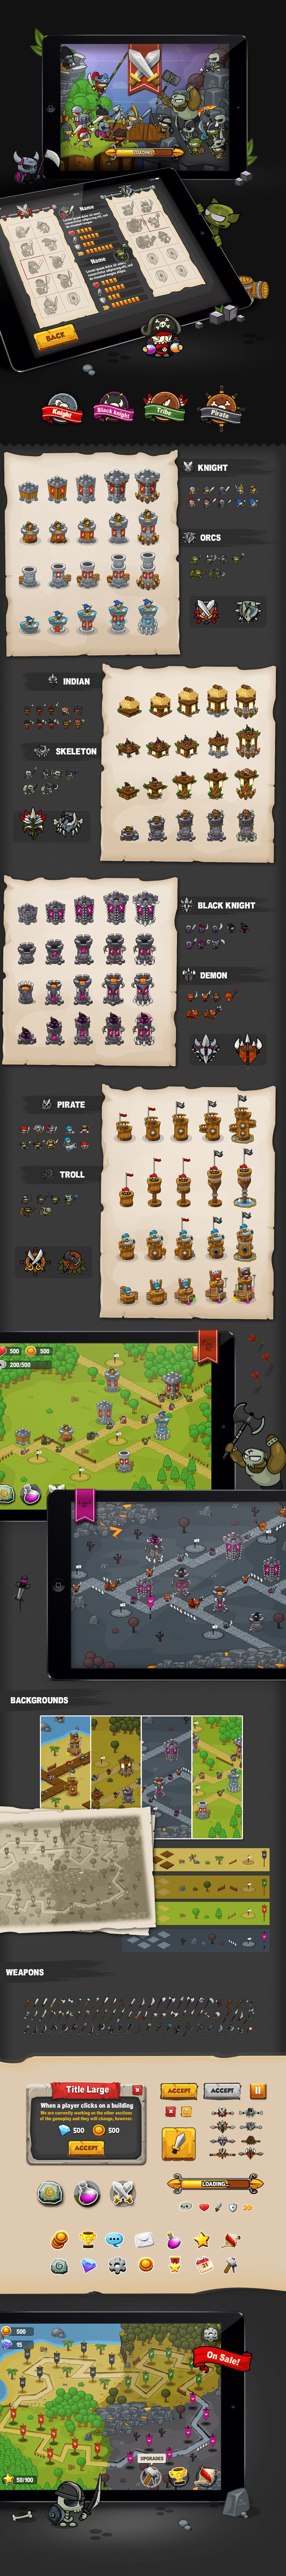 Tower Defense - Game on Behance